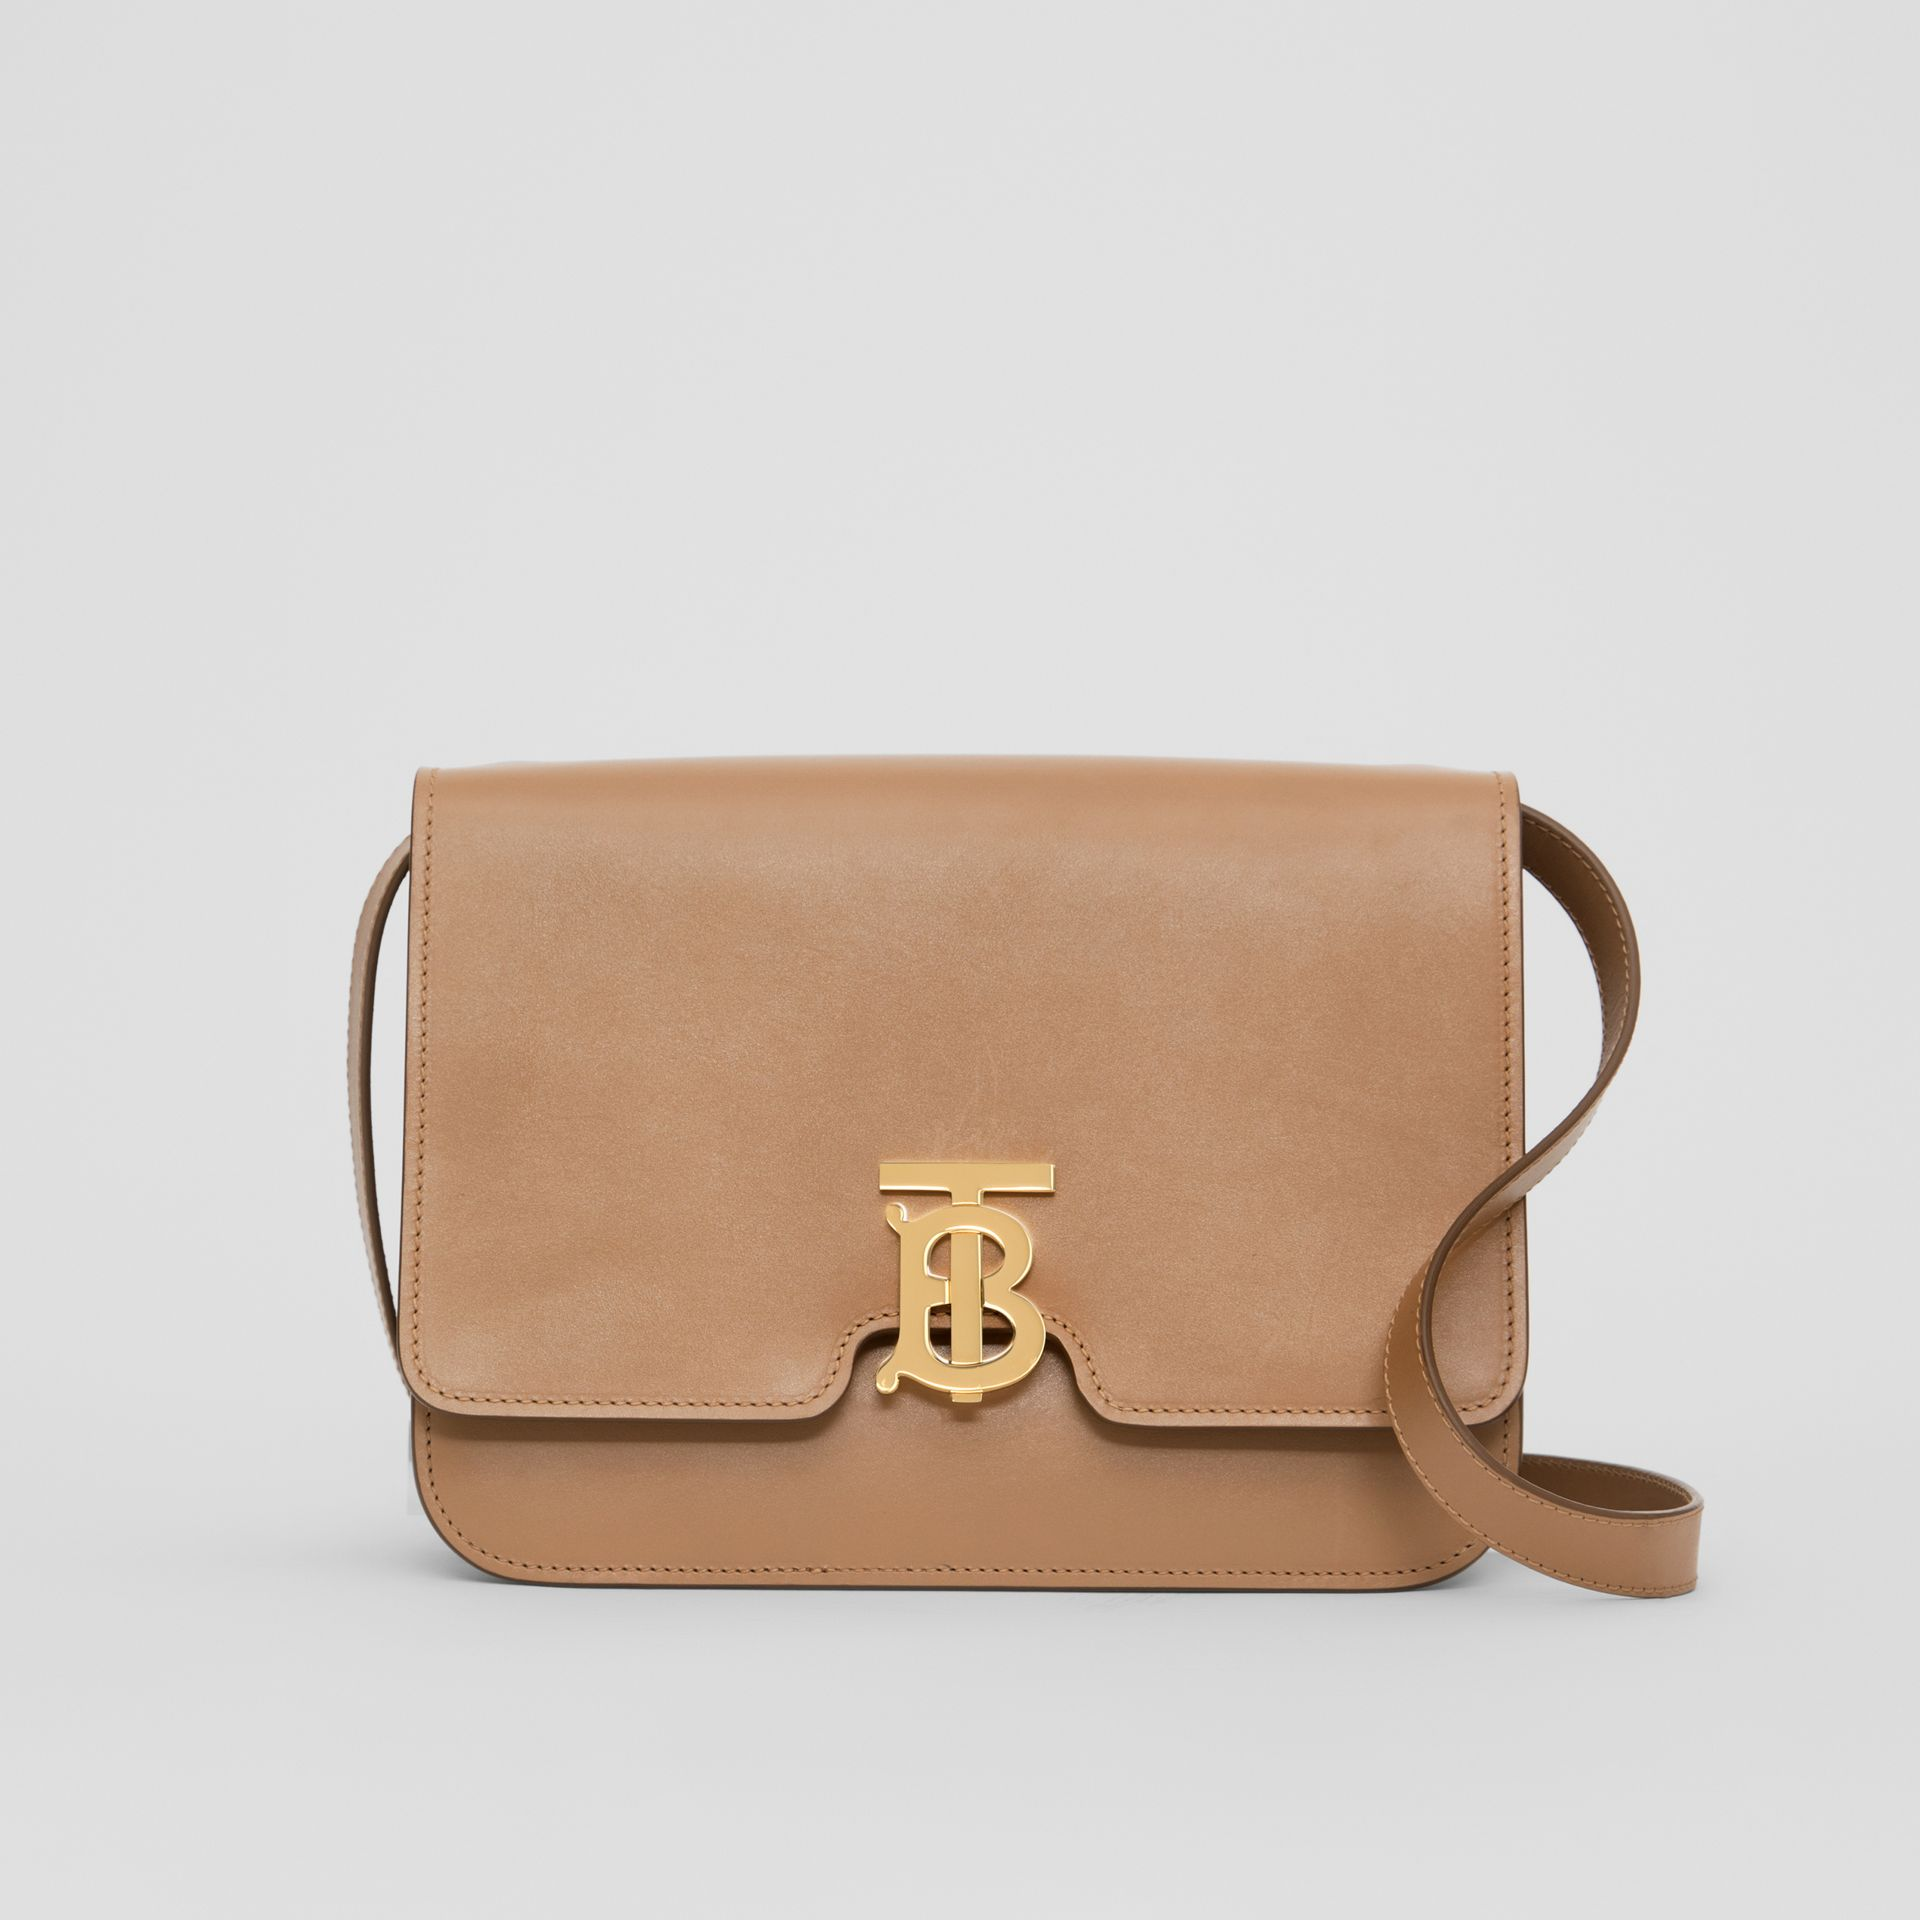 Medium Leather TB Bag in Light Camel - Women | Burberry United Kingdom - gallery image 0